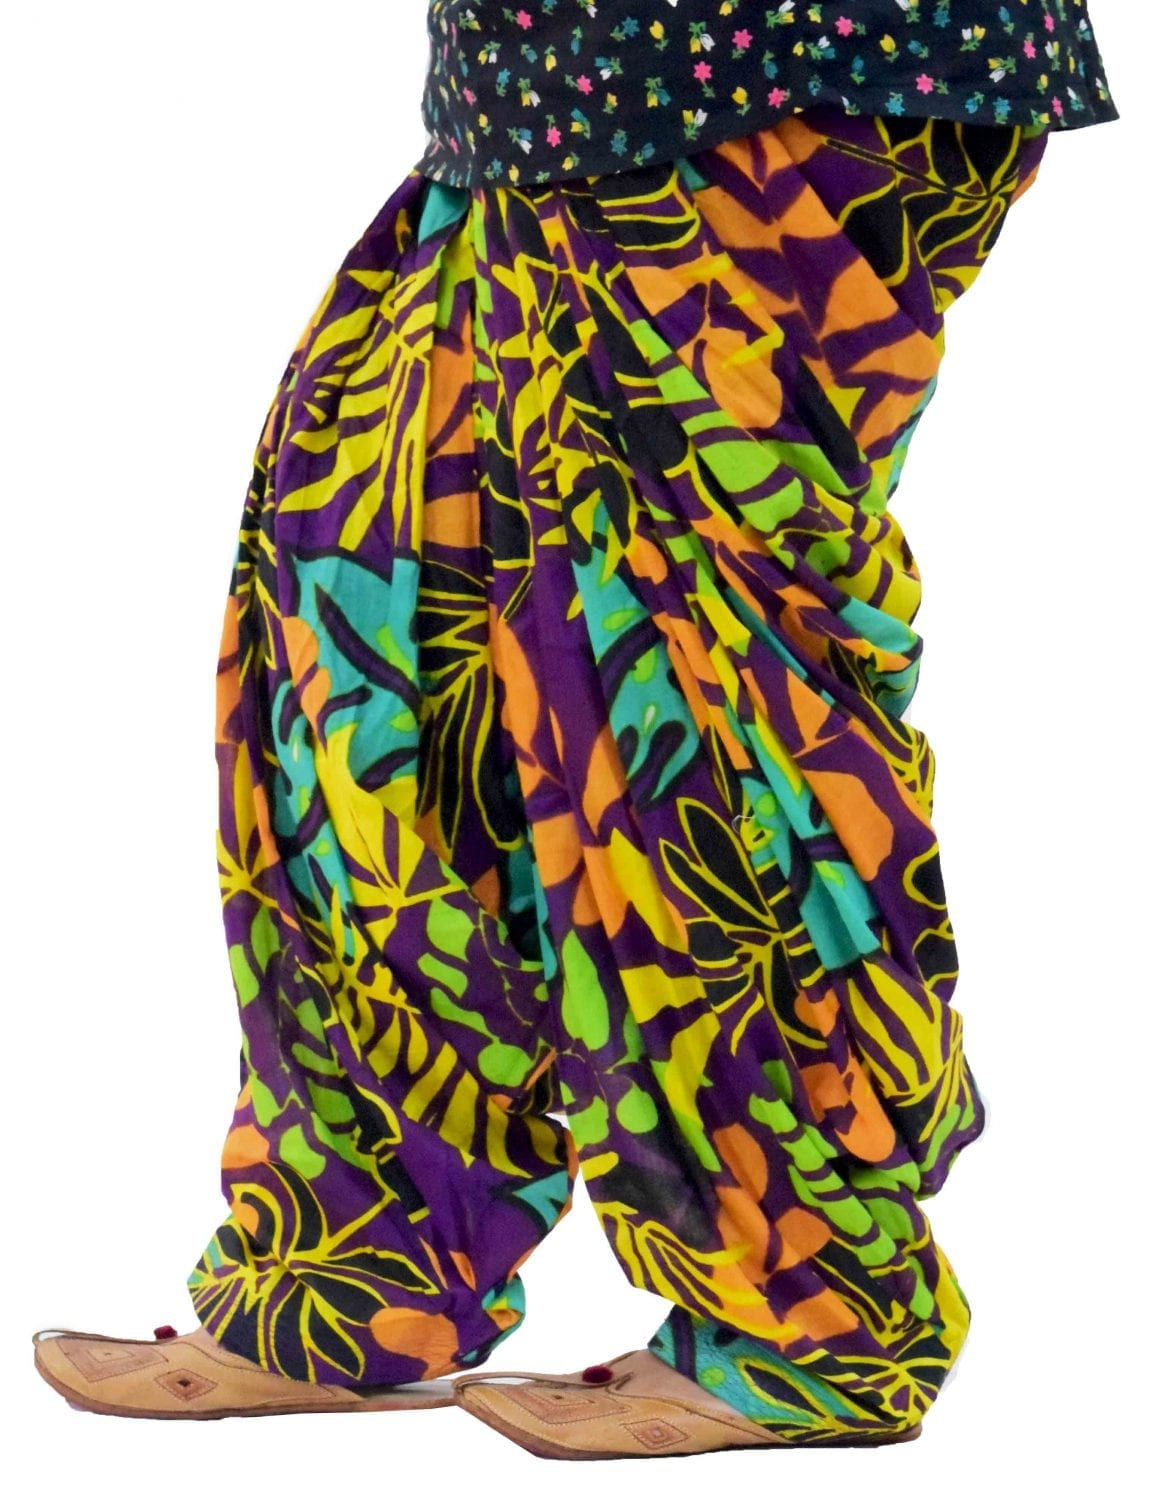 Printed Full Patiala Salwar Limited Edition 100% Pure Cotton Shalwar PPS233 2